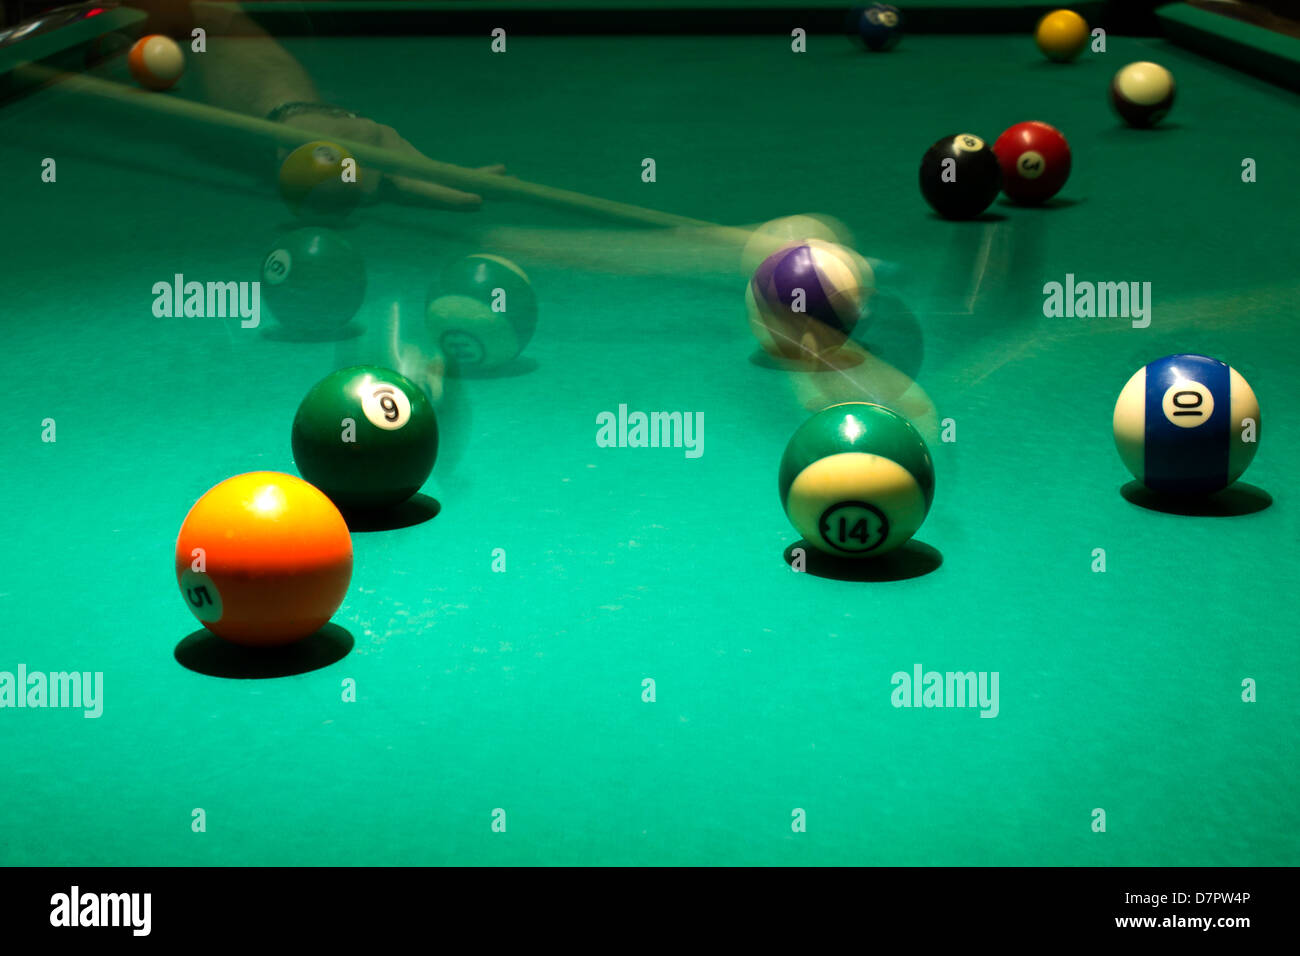 Billiard in pool with movement. - Stock Image